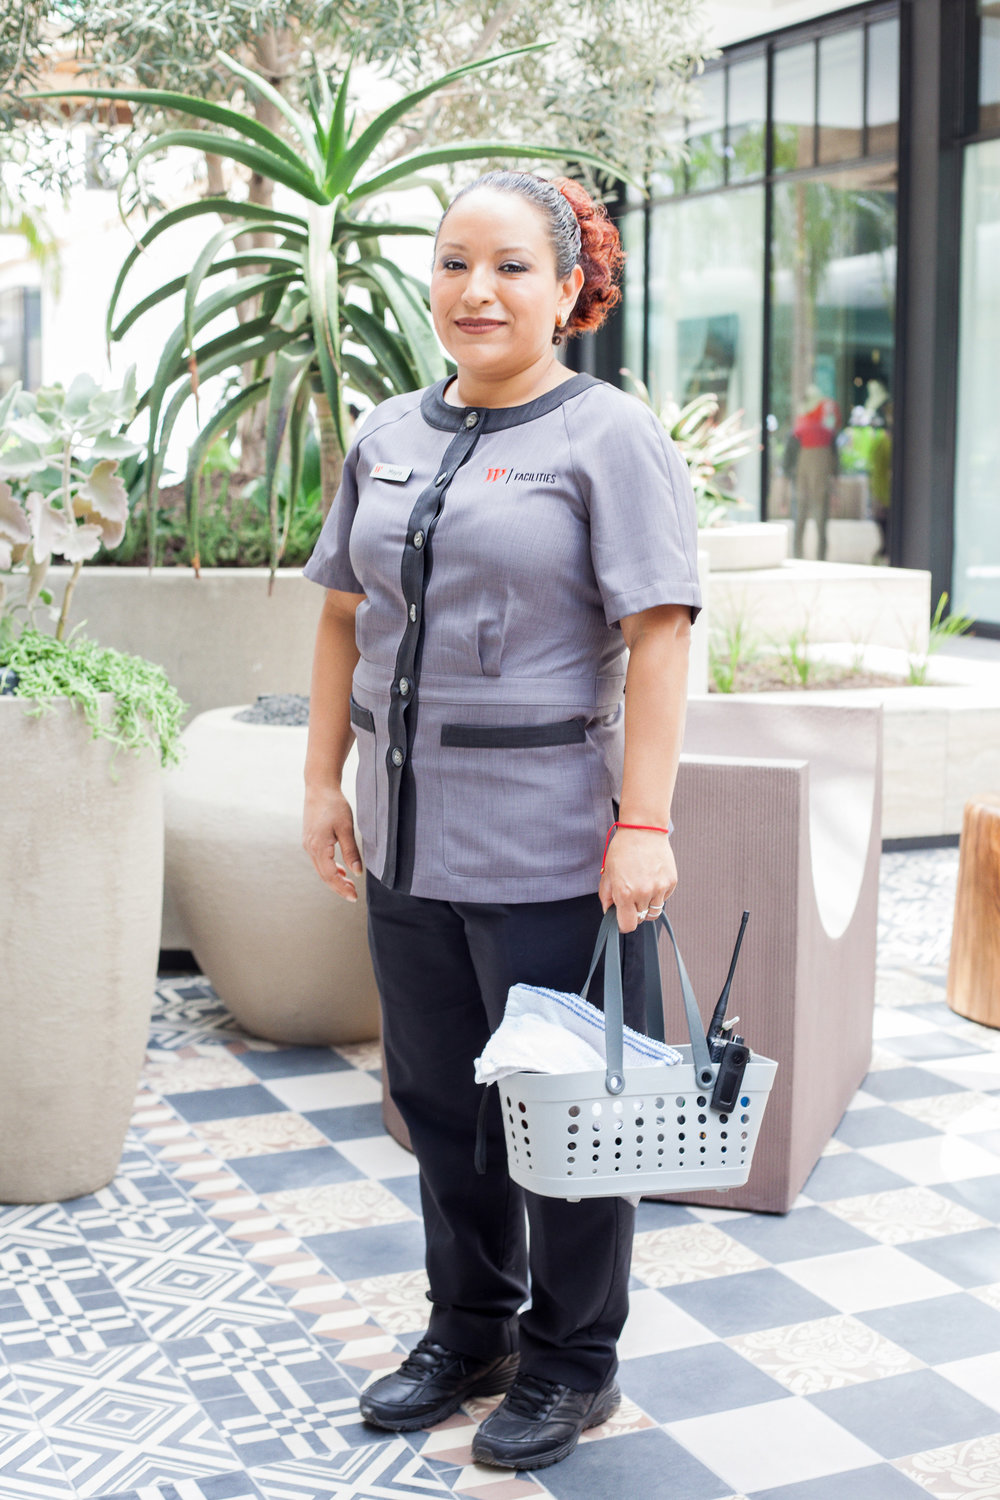 Women's housekeeping uniform